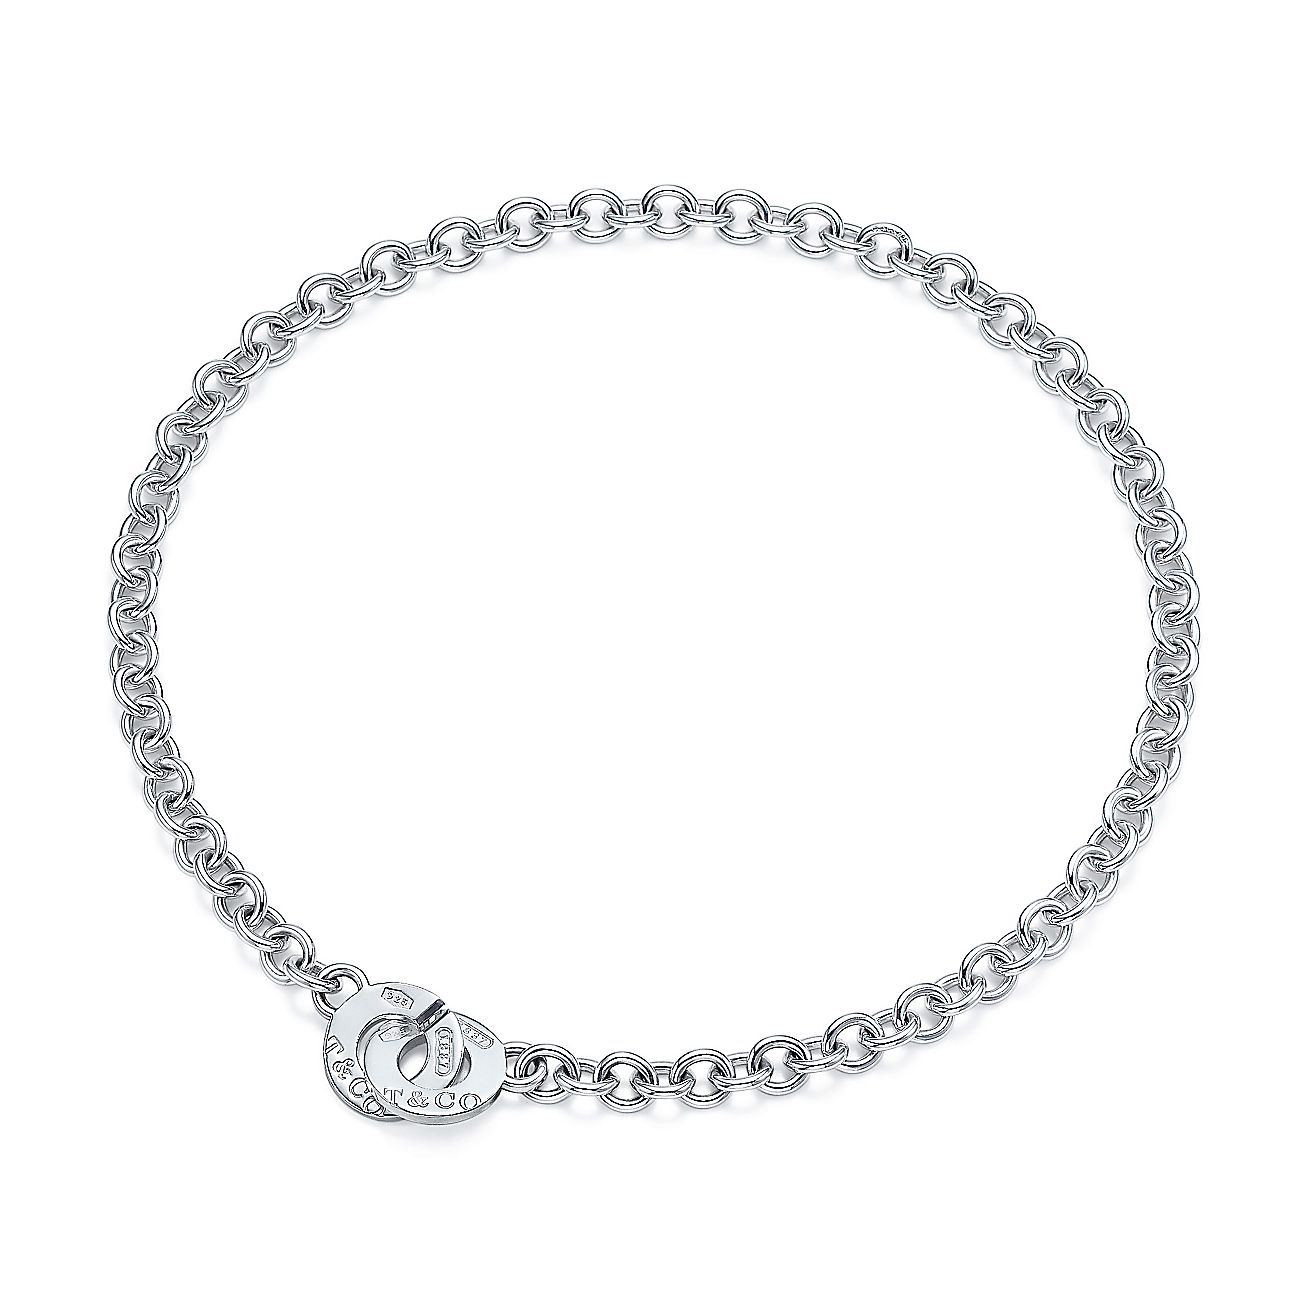 Tiffany 1837™<br>Circle clasp necklace